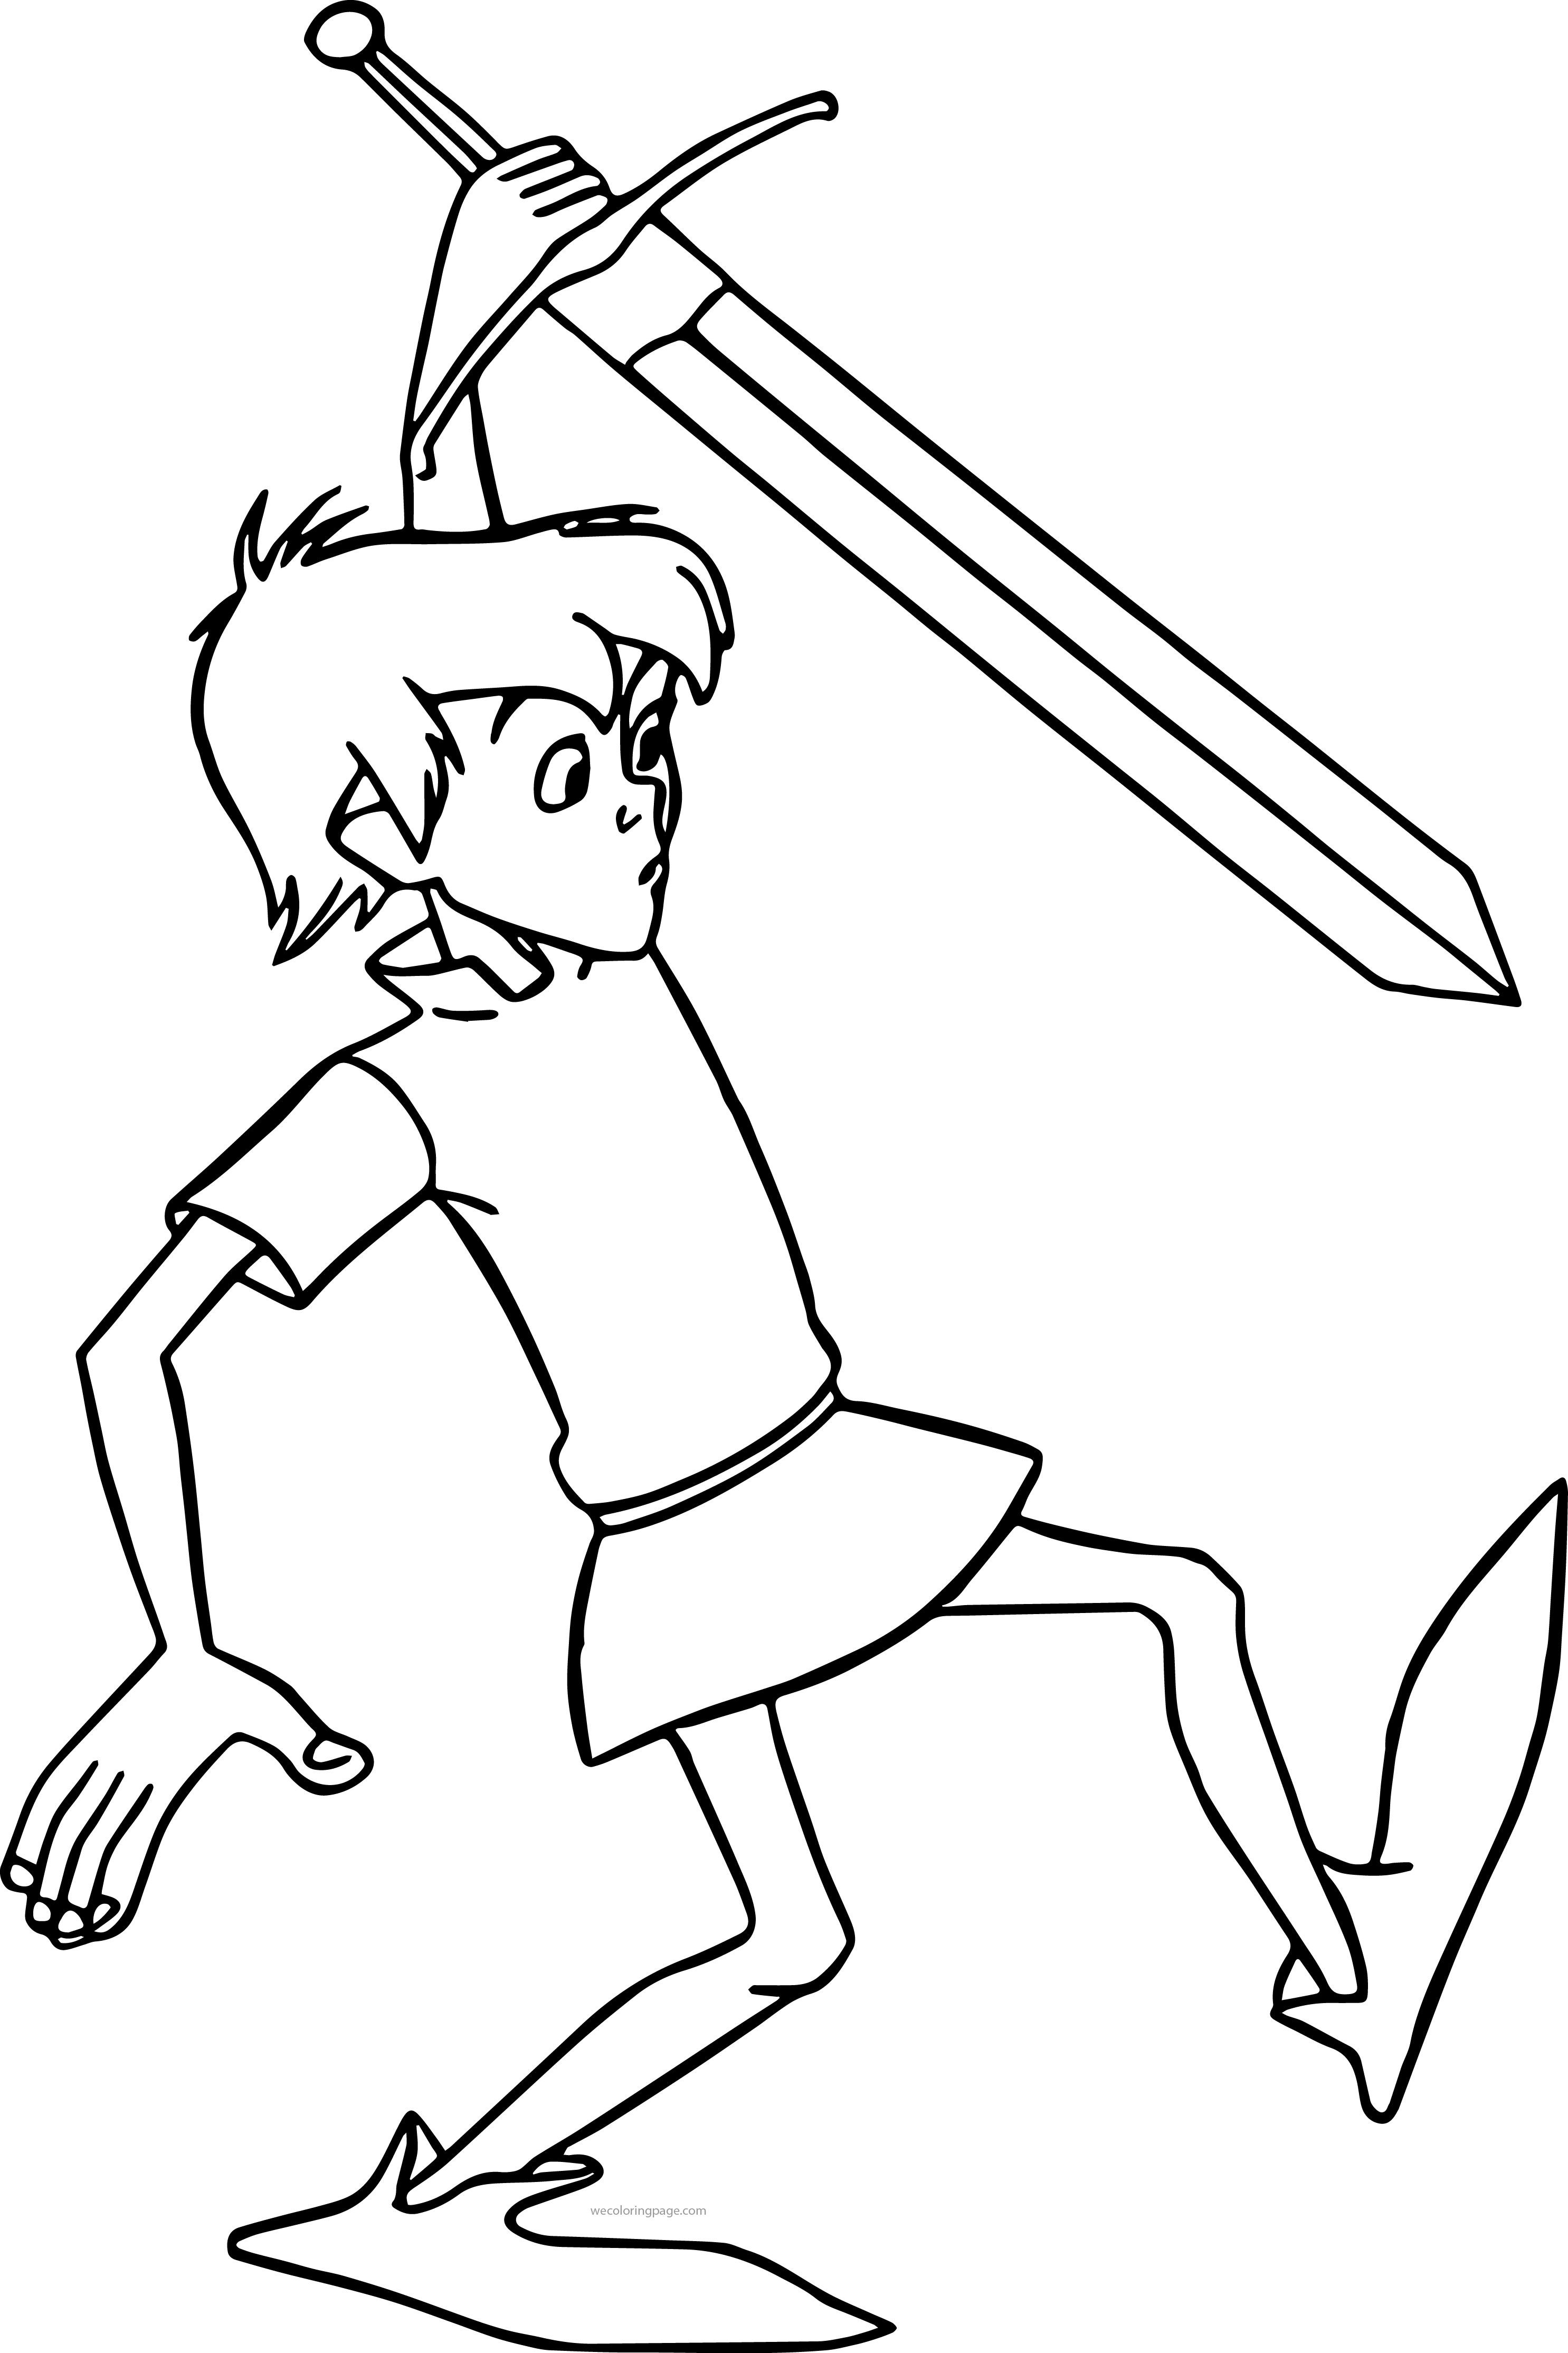 The Sword In The Stone Arthur Coloring Pages Coloring Pages Sword In The Stone Disney Coloring Pages